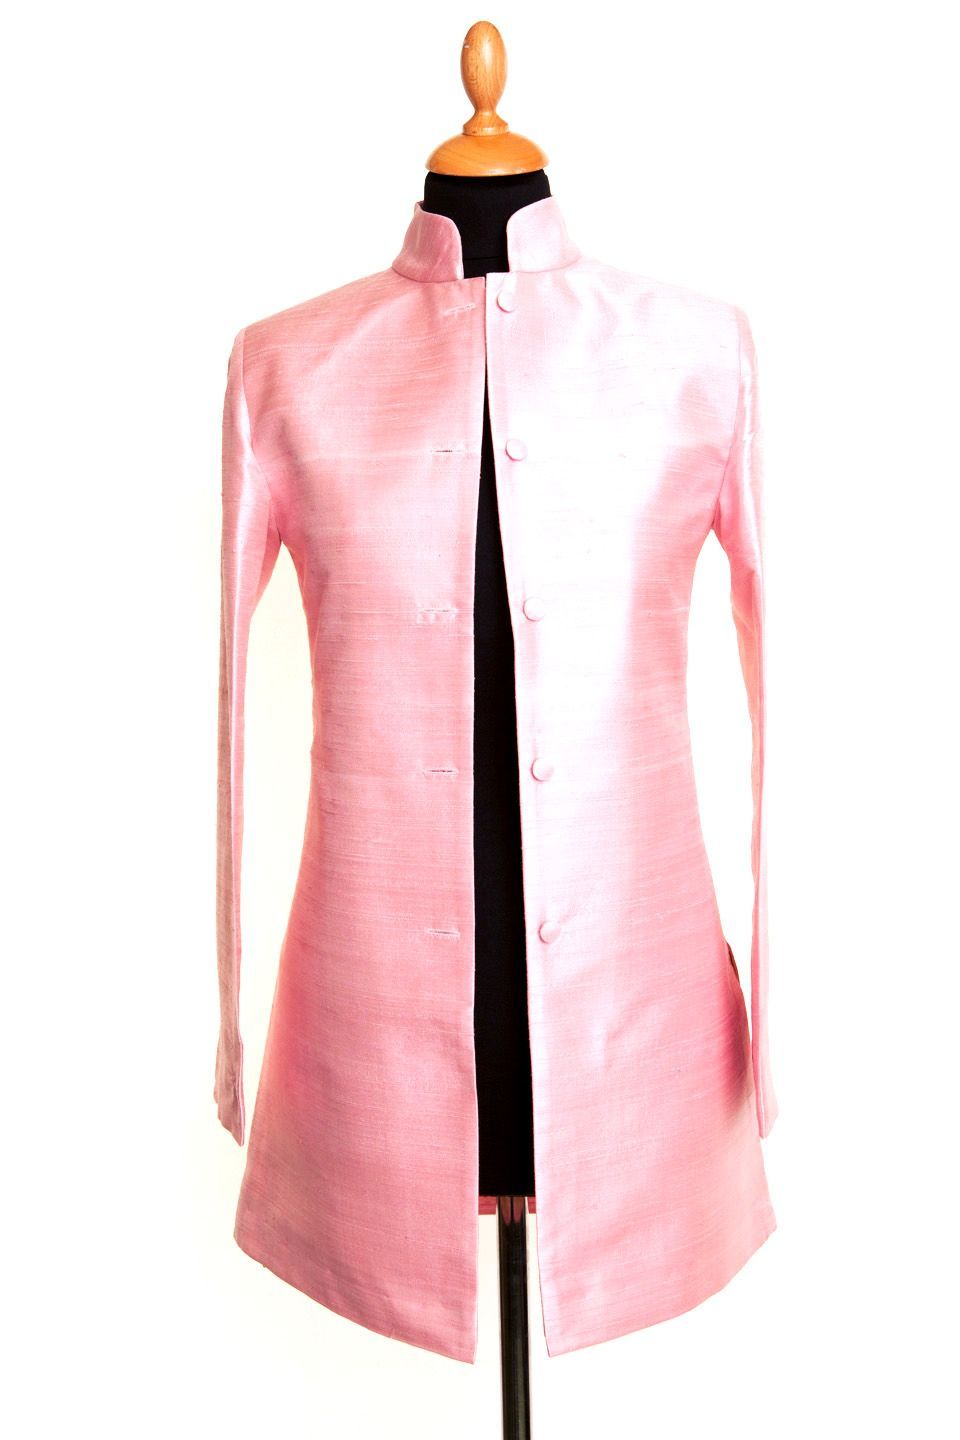 6a588217127 Silk Long Nehru Jacket in Pink Sugar - £265 #silk #jacket #fashion #women  #shibumi